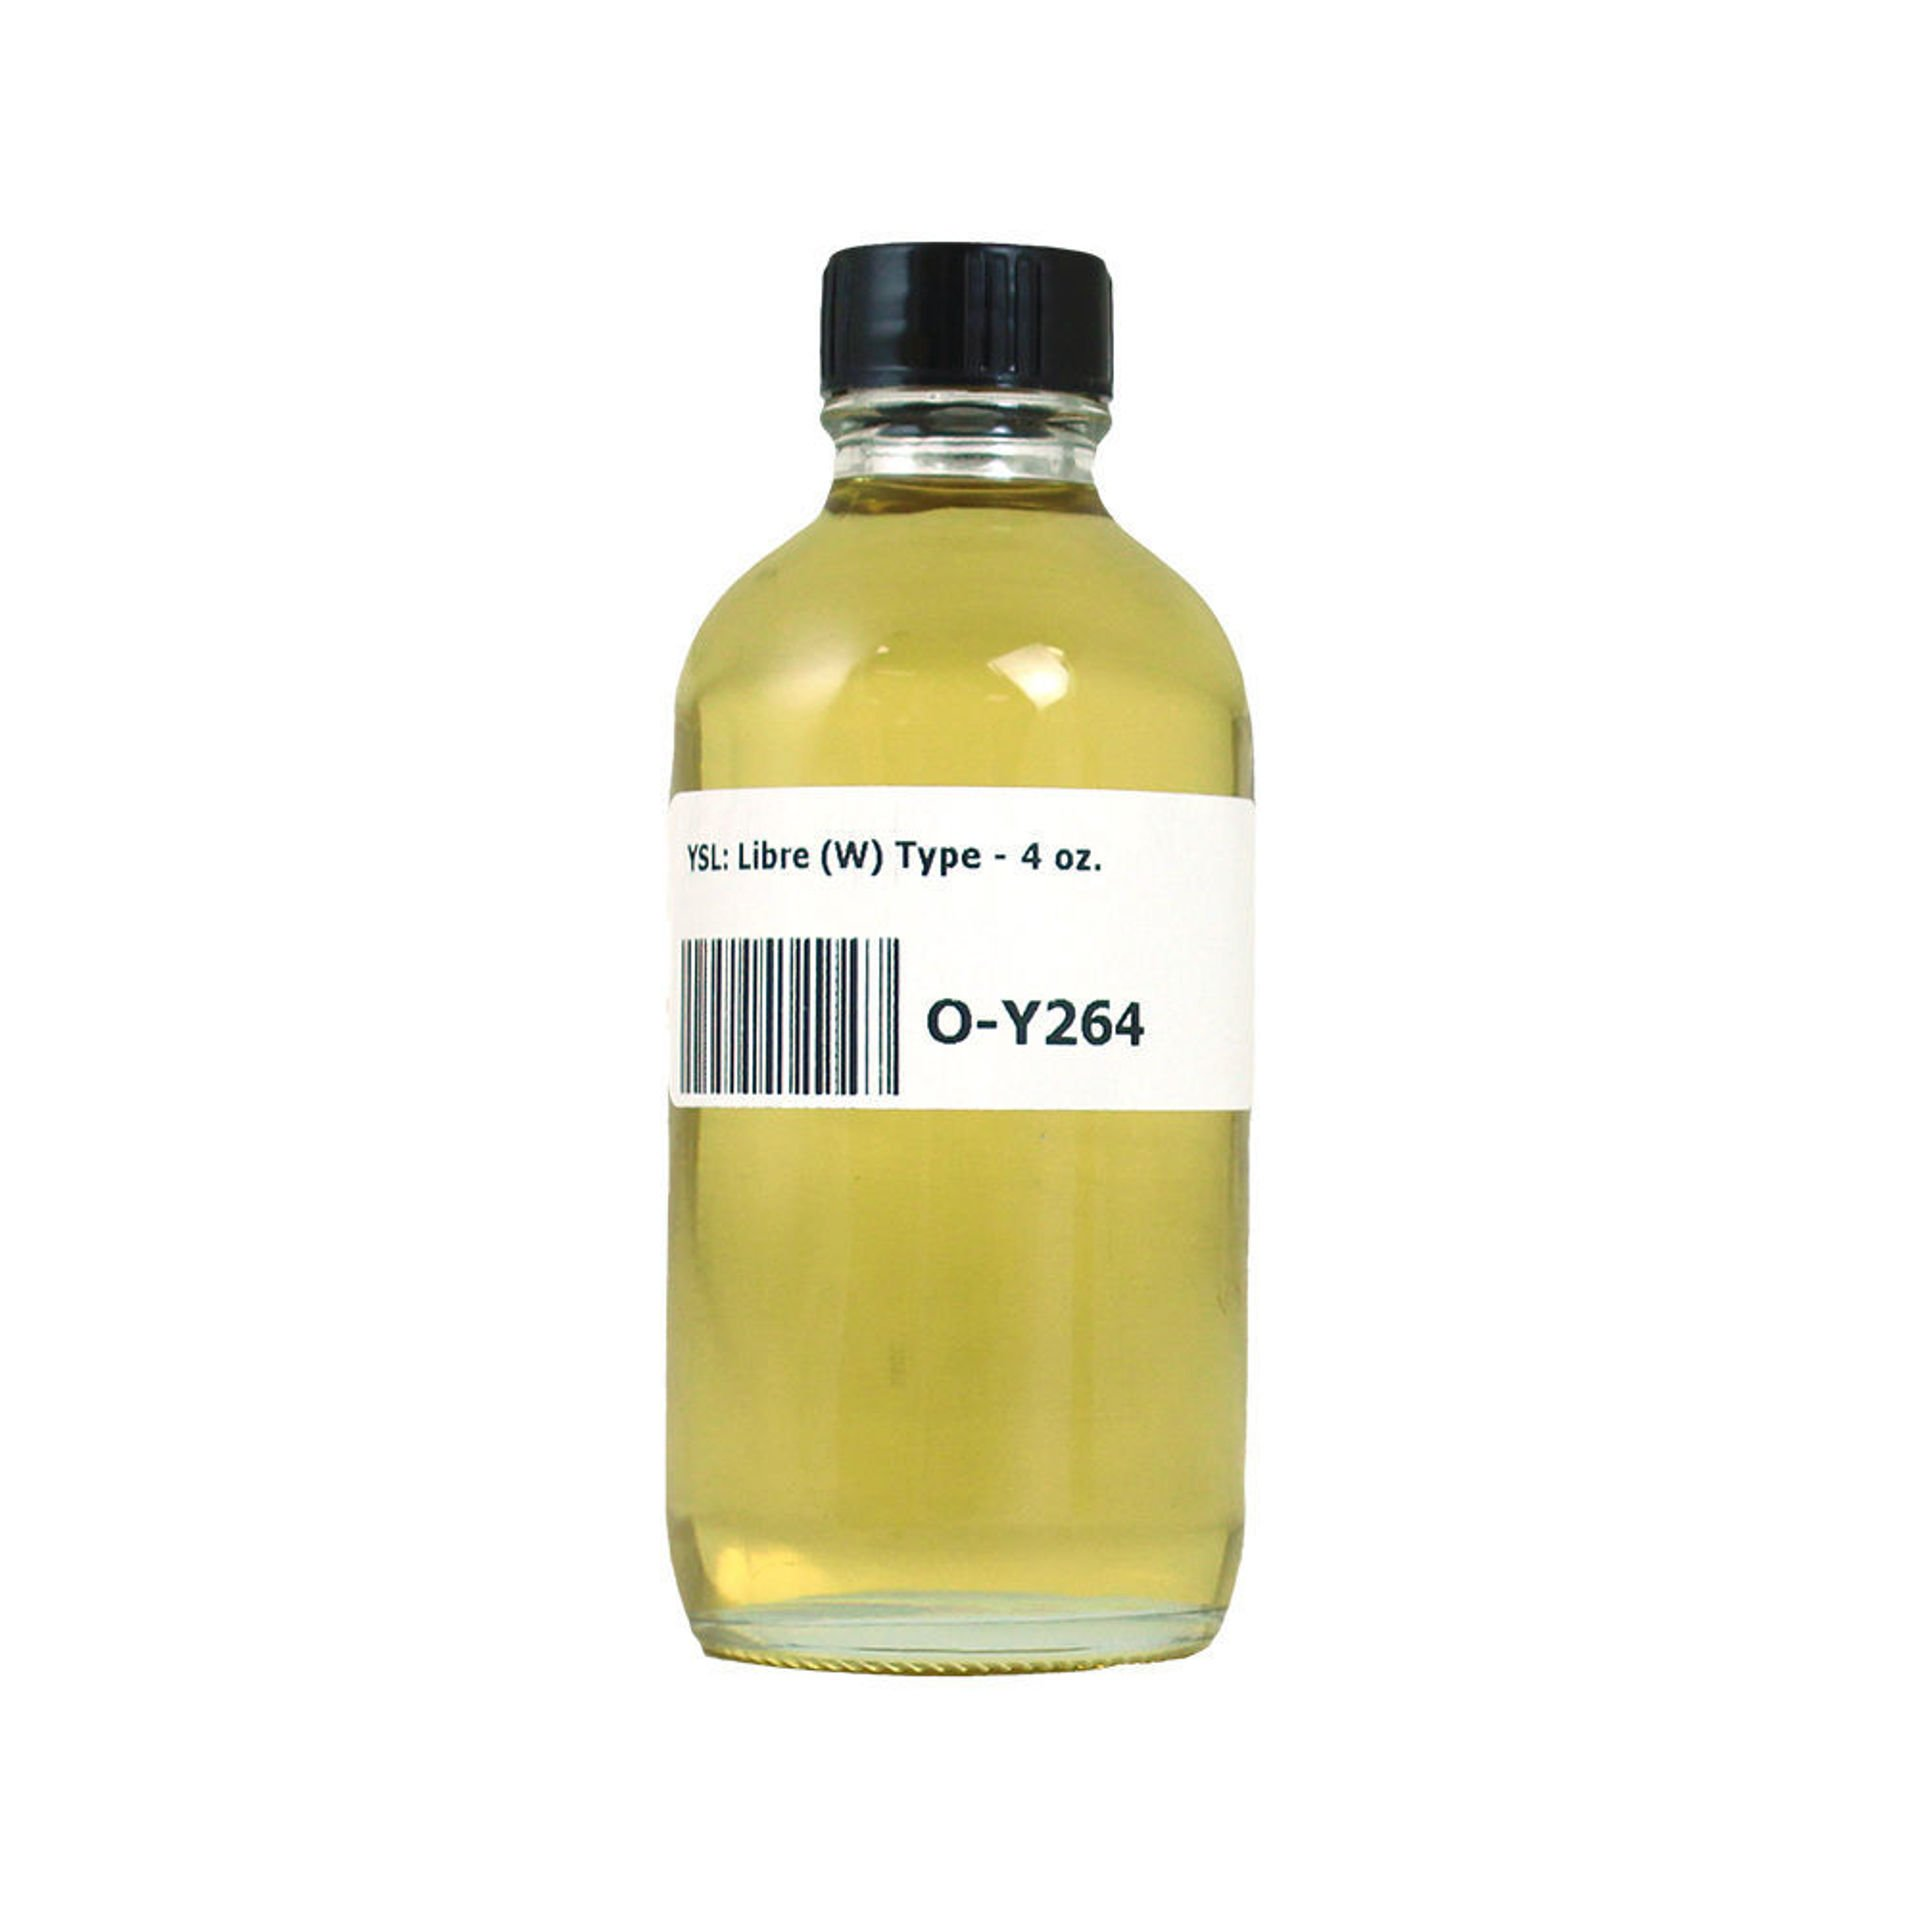 Picture of YSL: Libre (W) Type - 4 oz.